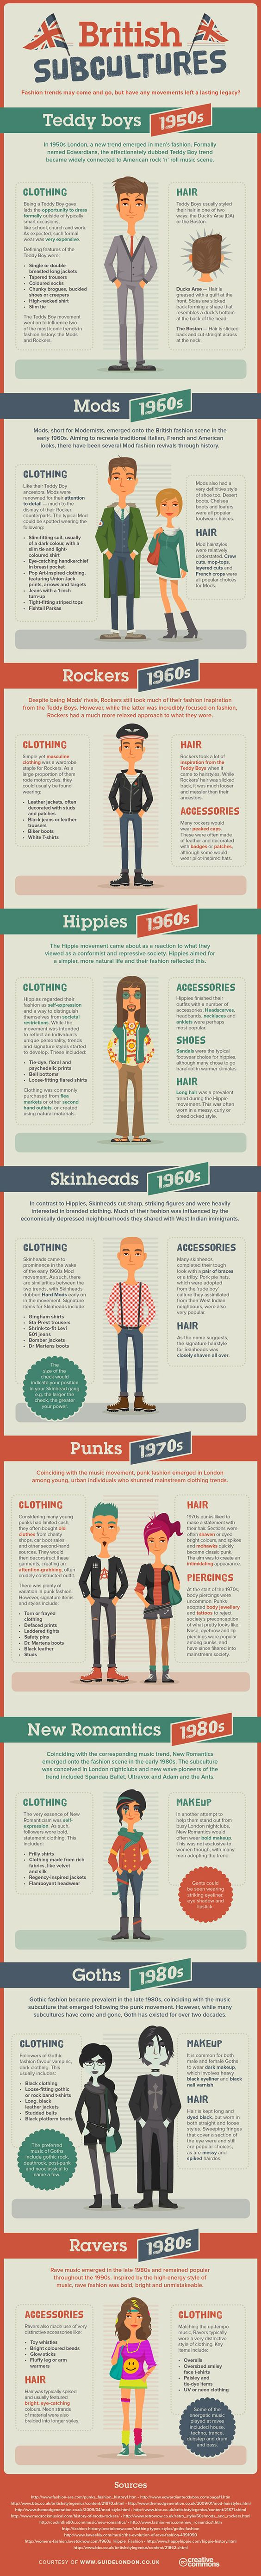 Guide London Explores History of British Fashion #style #infographic: